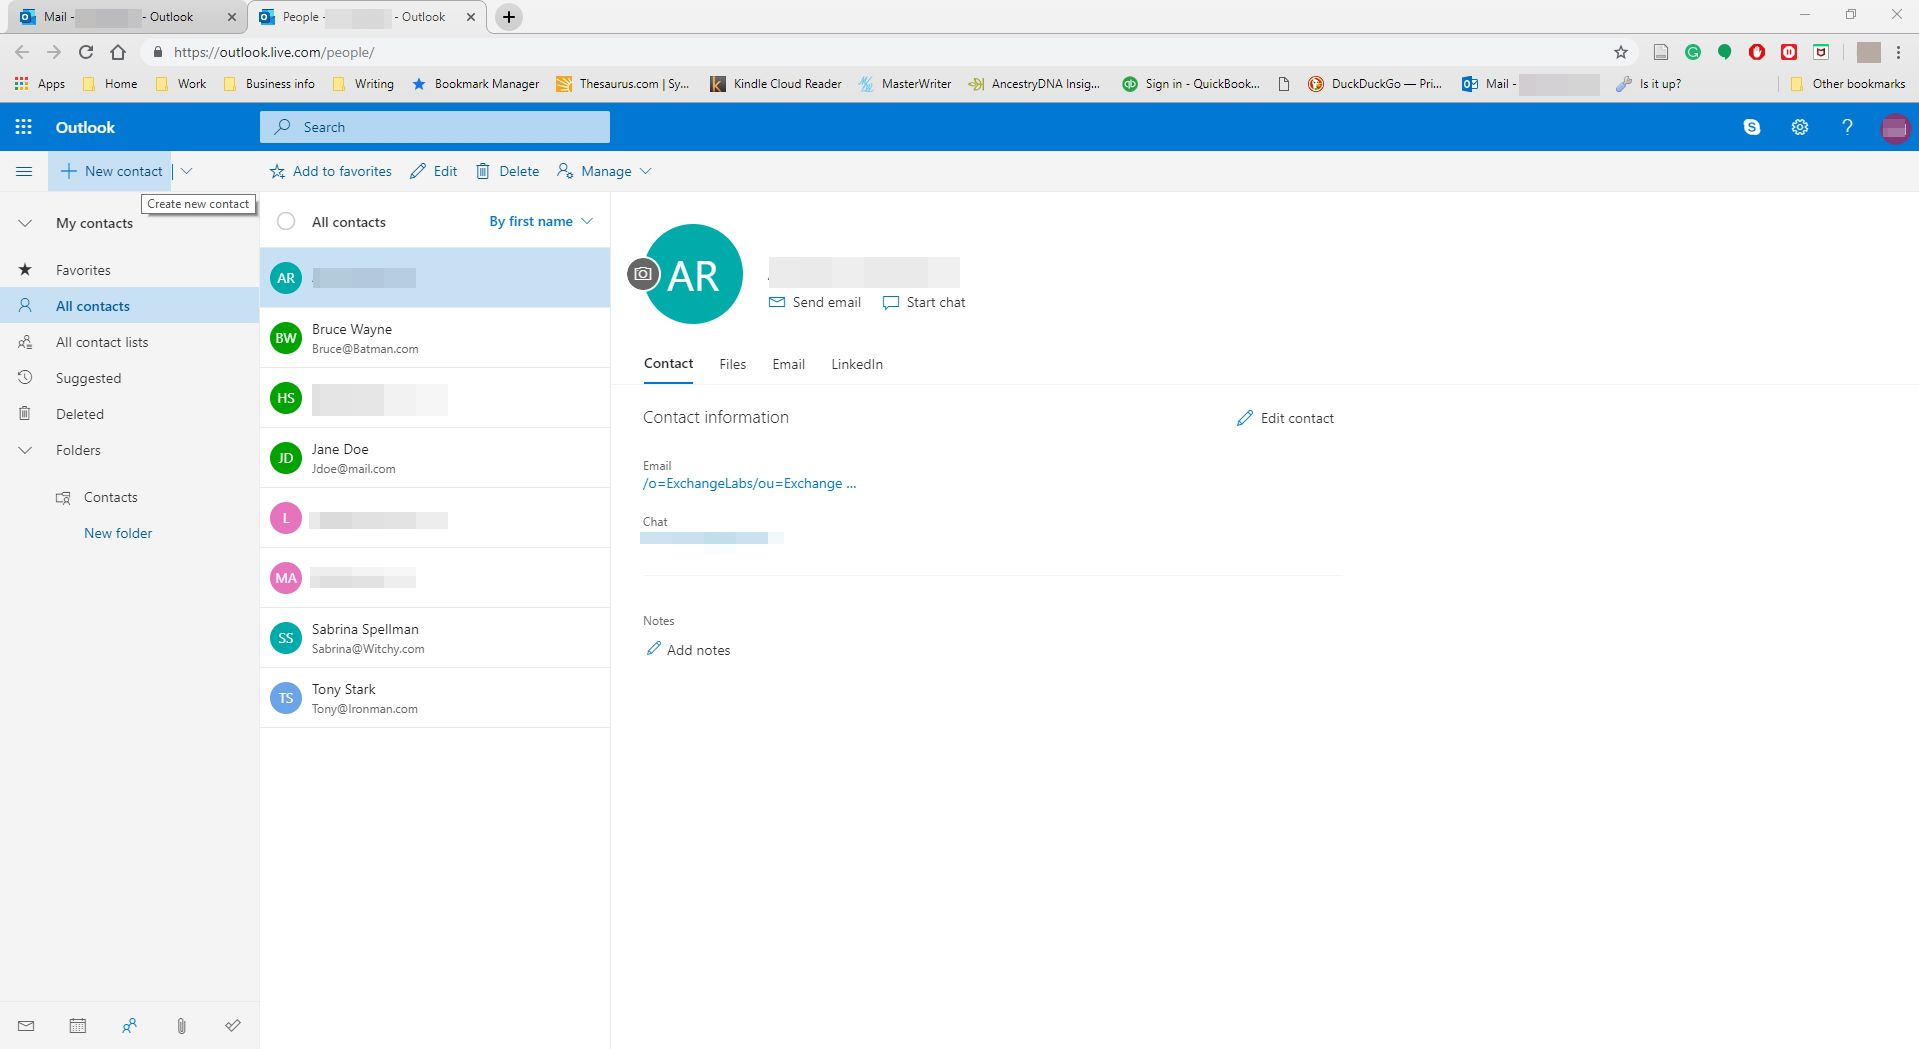 Selecting to create a new contact in Outlook.com